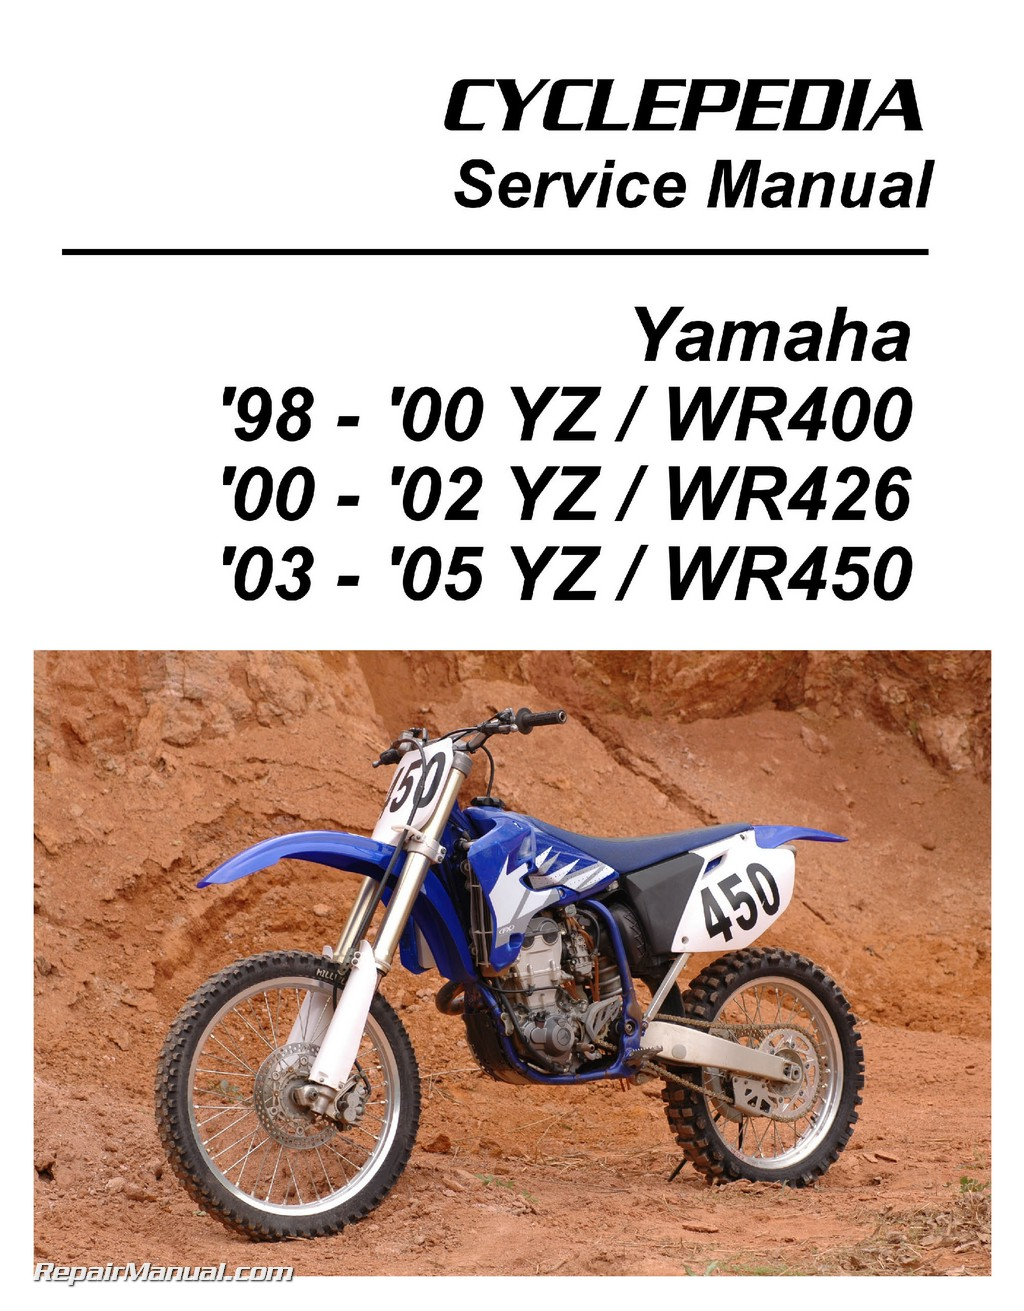 Yamaha Wr426 Engine Wiring Wr De Restriction And Conversion To Yz Diagram F Cyclepedia Printed Motorcycle Service 400 426 450f